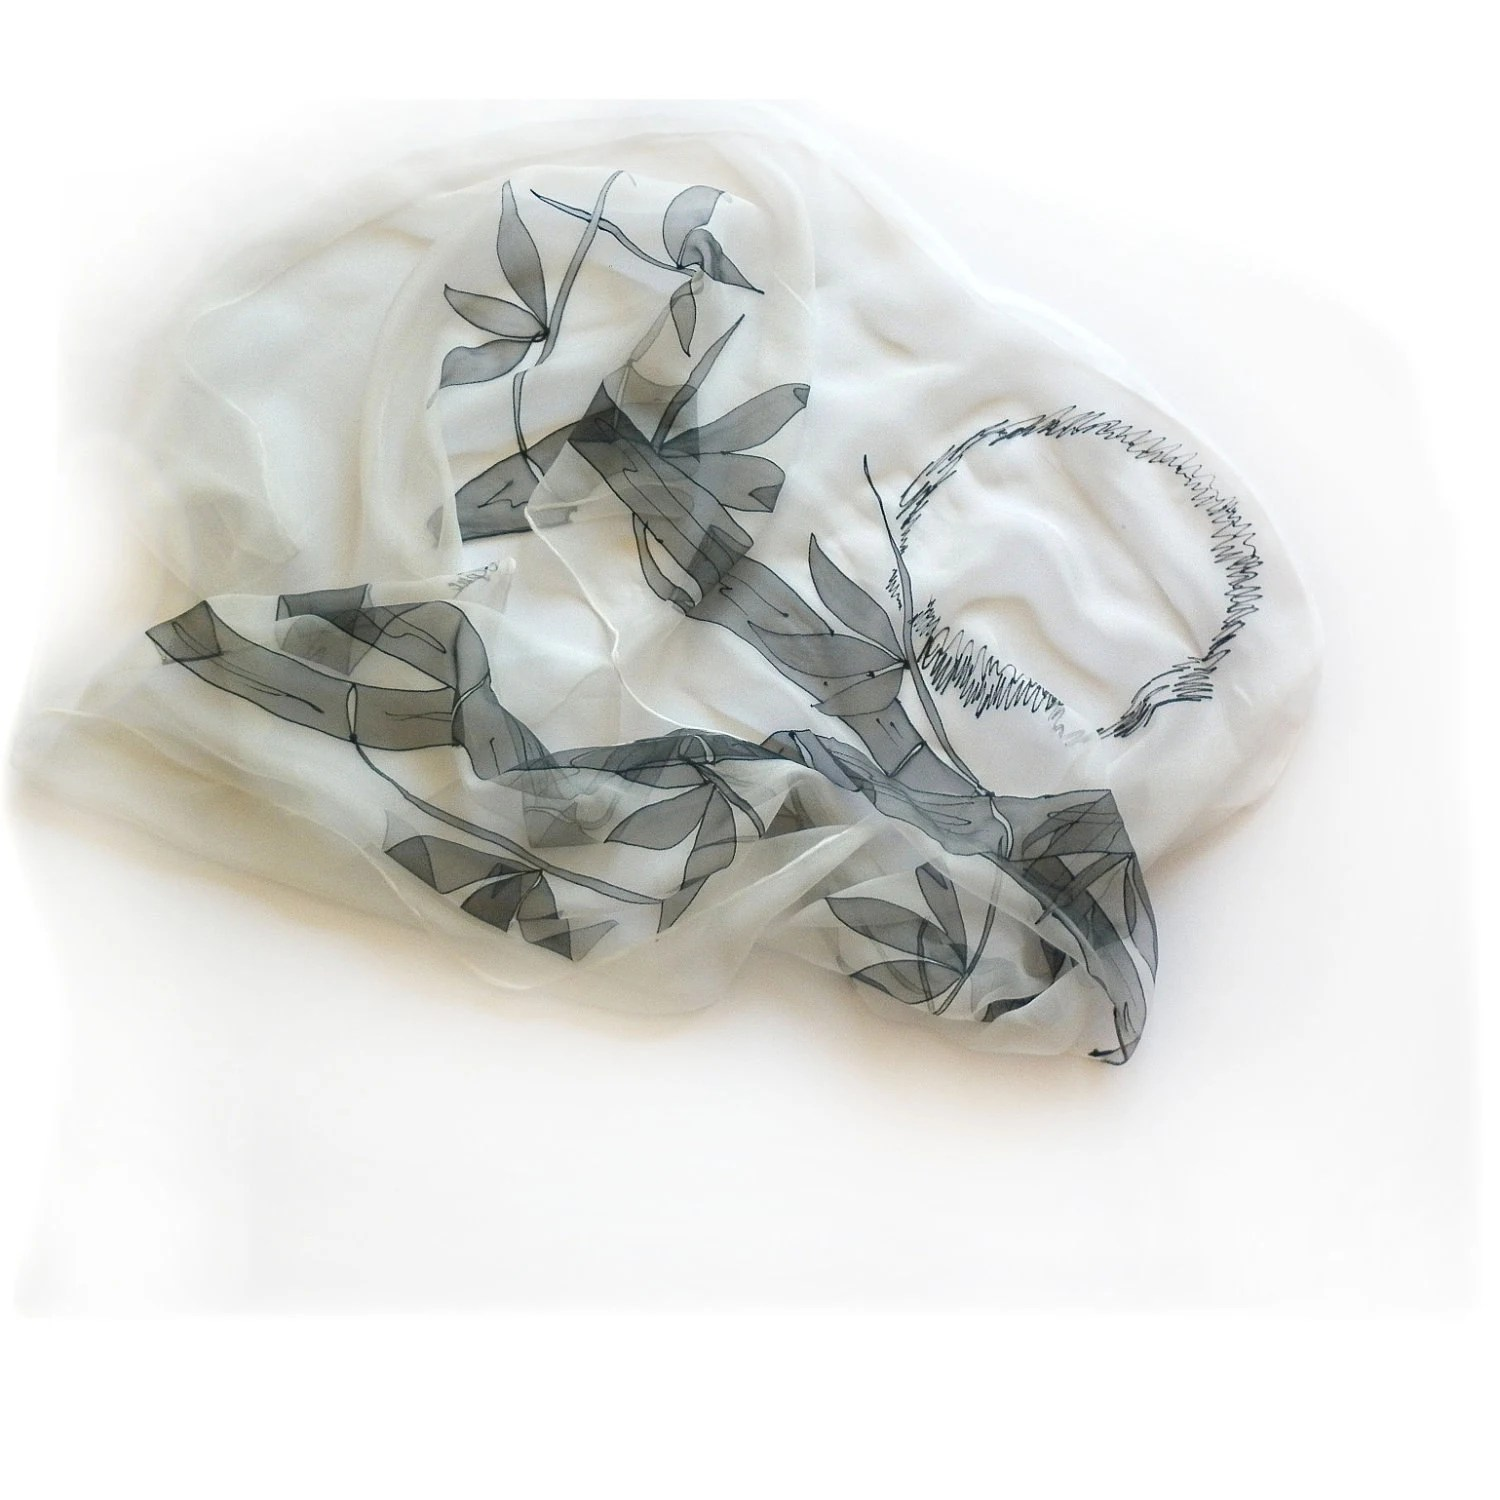 Hand Painted Silk Chiffon Long Scarf Bamboo Motifs Black and White - MKrisArt